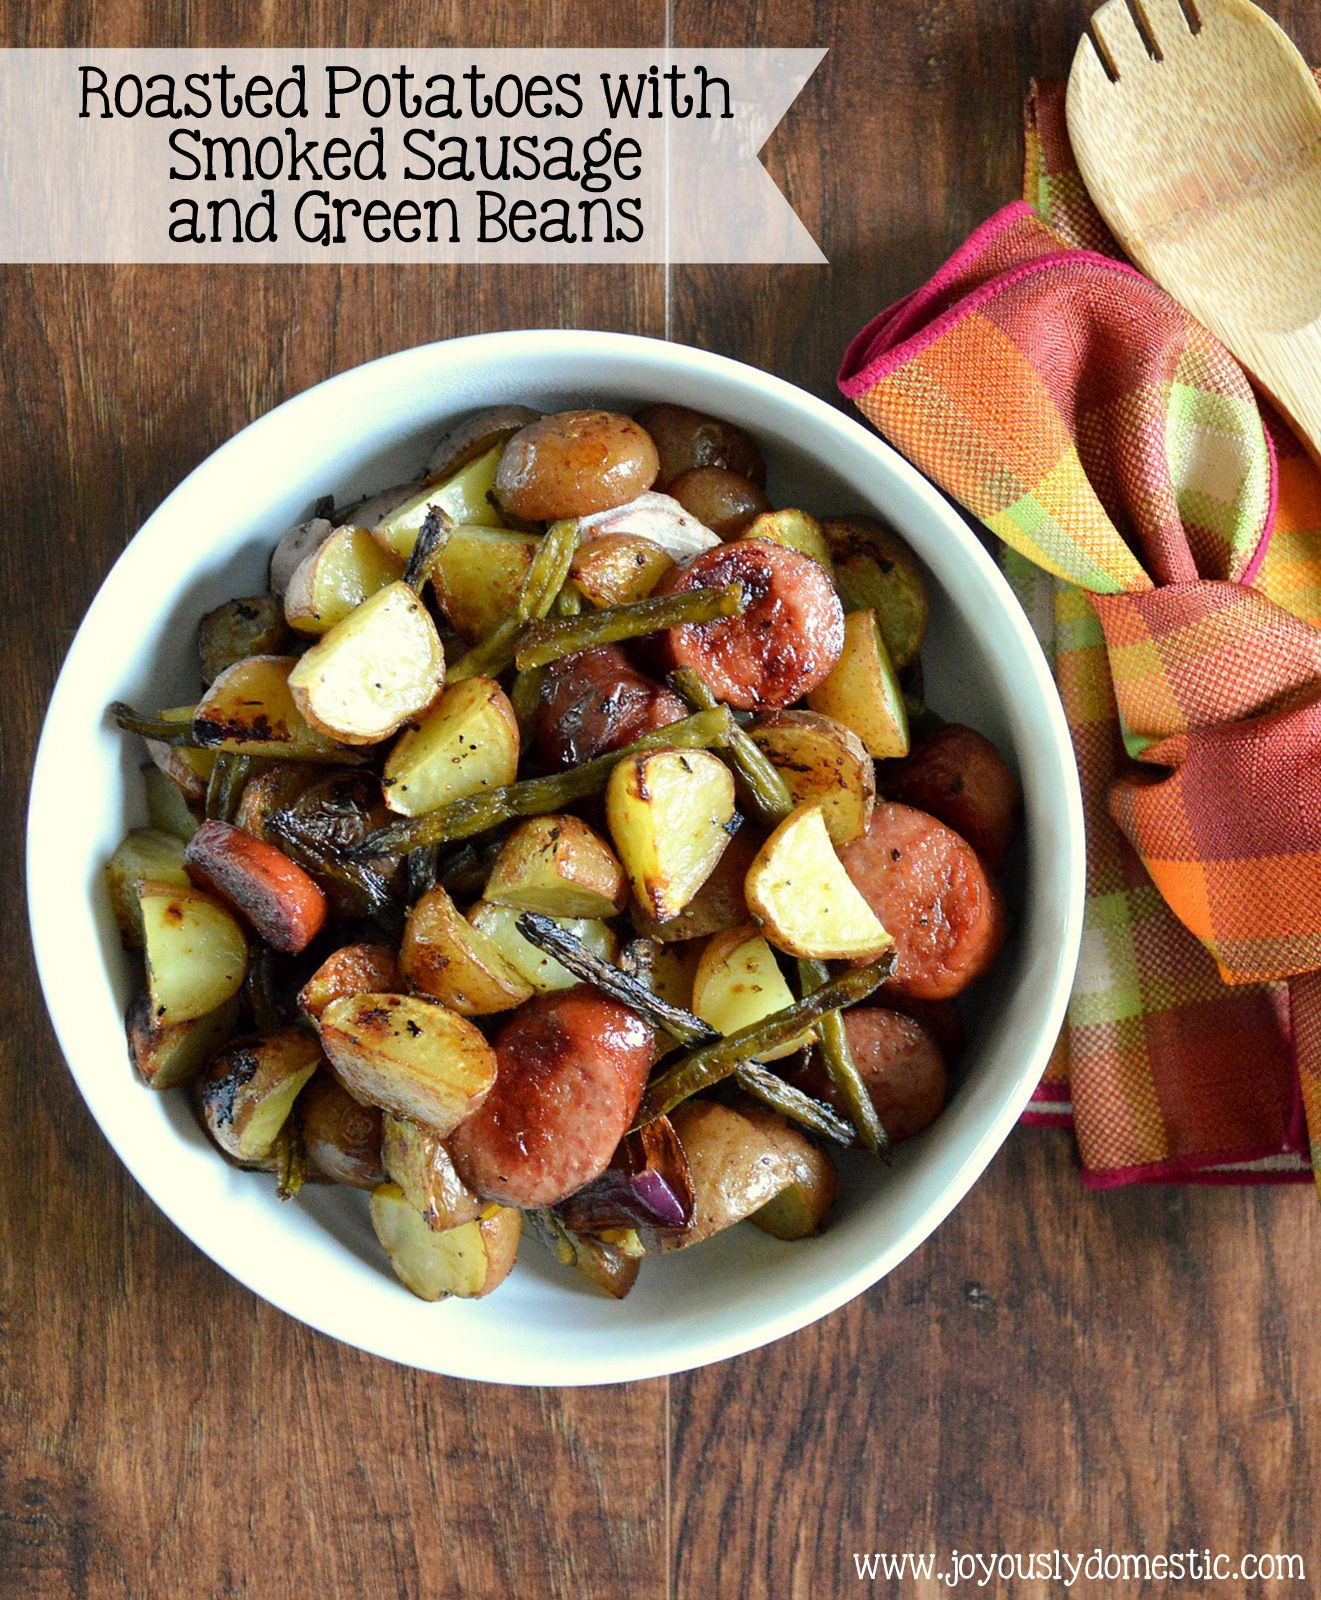 Roasted potatoes with smoked sausage green beans in 2020